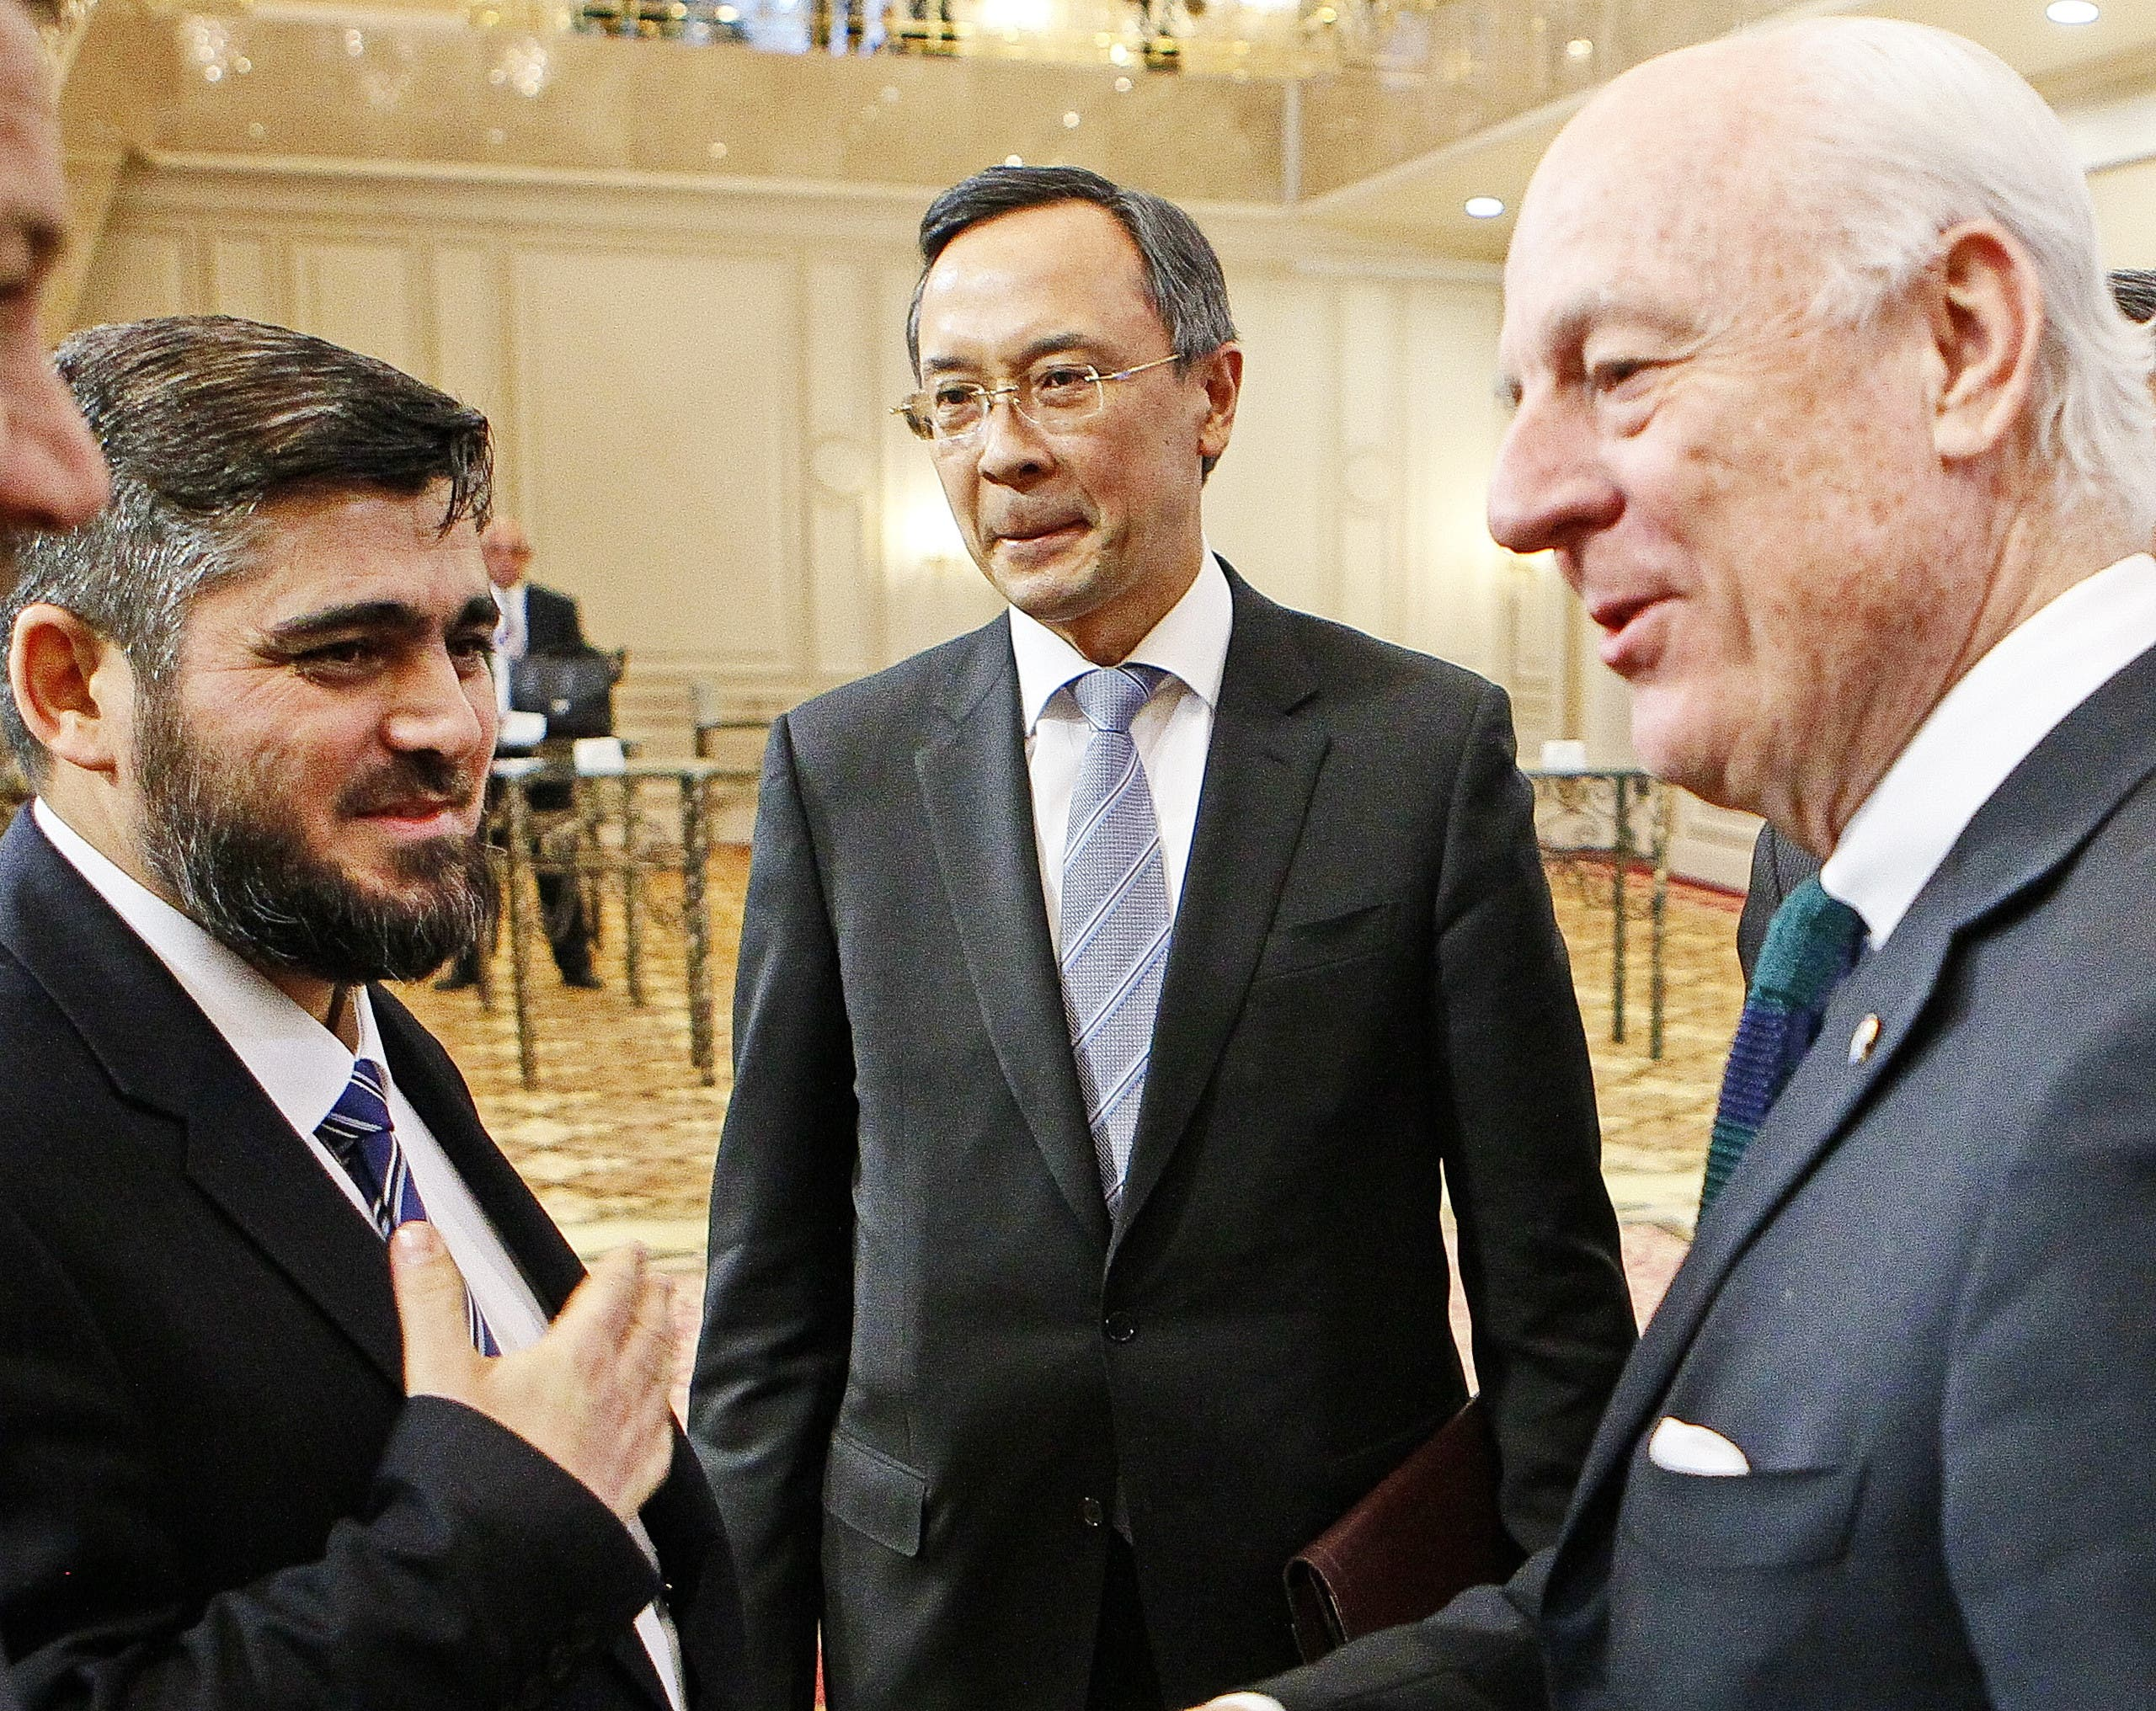 UN envoy for Syria Staffan de Mistura (R) speaks with chief opposition negotiator Mohammad Alloush (L) of the Jaish al-Islam (Army of Islam) rebel group as Kazakh Foreign Minister Kairat Abdrakhmanov stands beside prior to the first session of Syria peace talks at Astana's Rixos President Hotel on January 23, 2017.